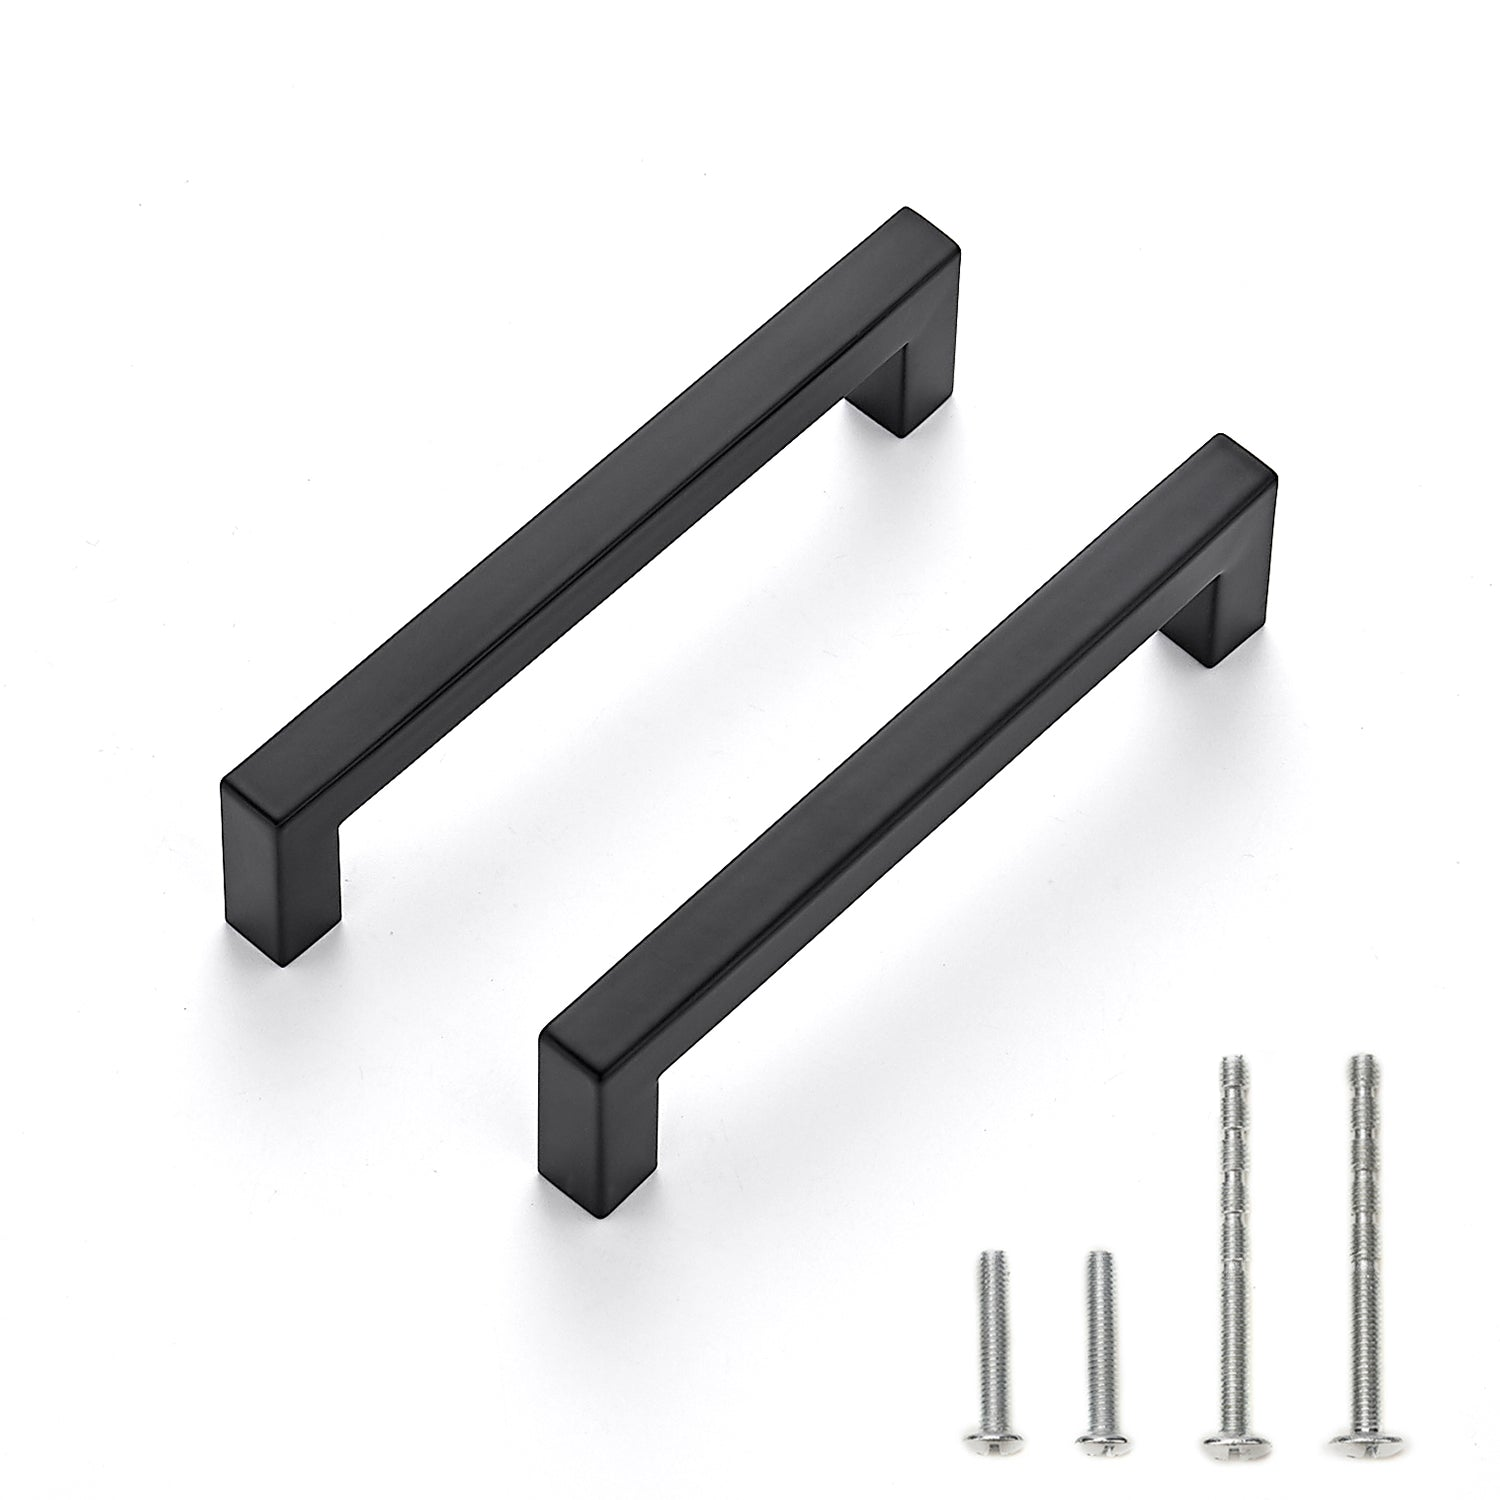 Ravinte 15 Pack 5 Inch Kitchen Square Cabinet Handles Matte Black Cabinet Pulls Black Drawer Pulls Kitchen Cabinet Hardware Kitchen Handles for Cabinets Cupboard Handles Drawer Handles